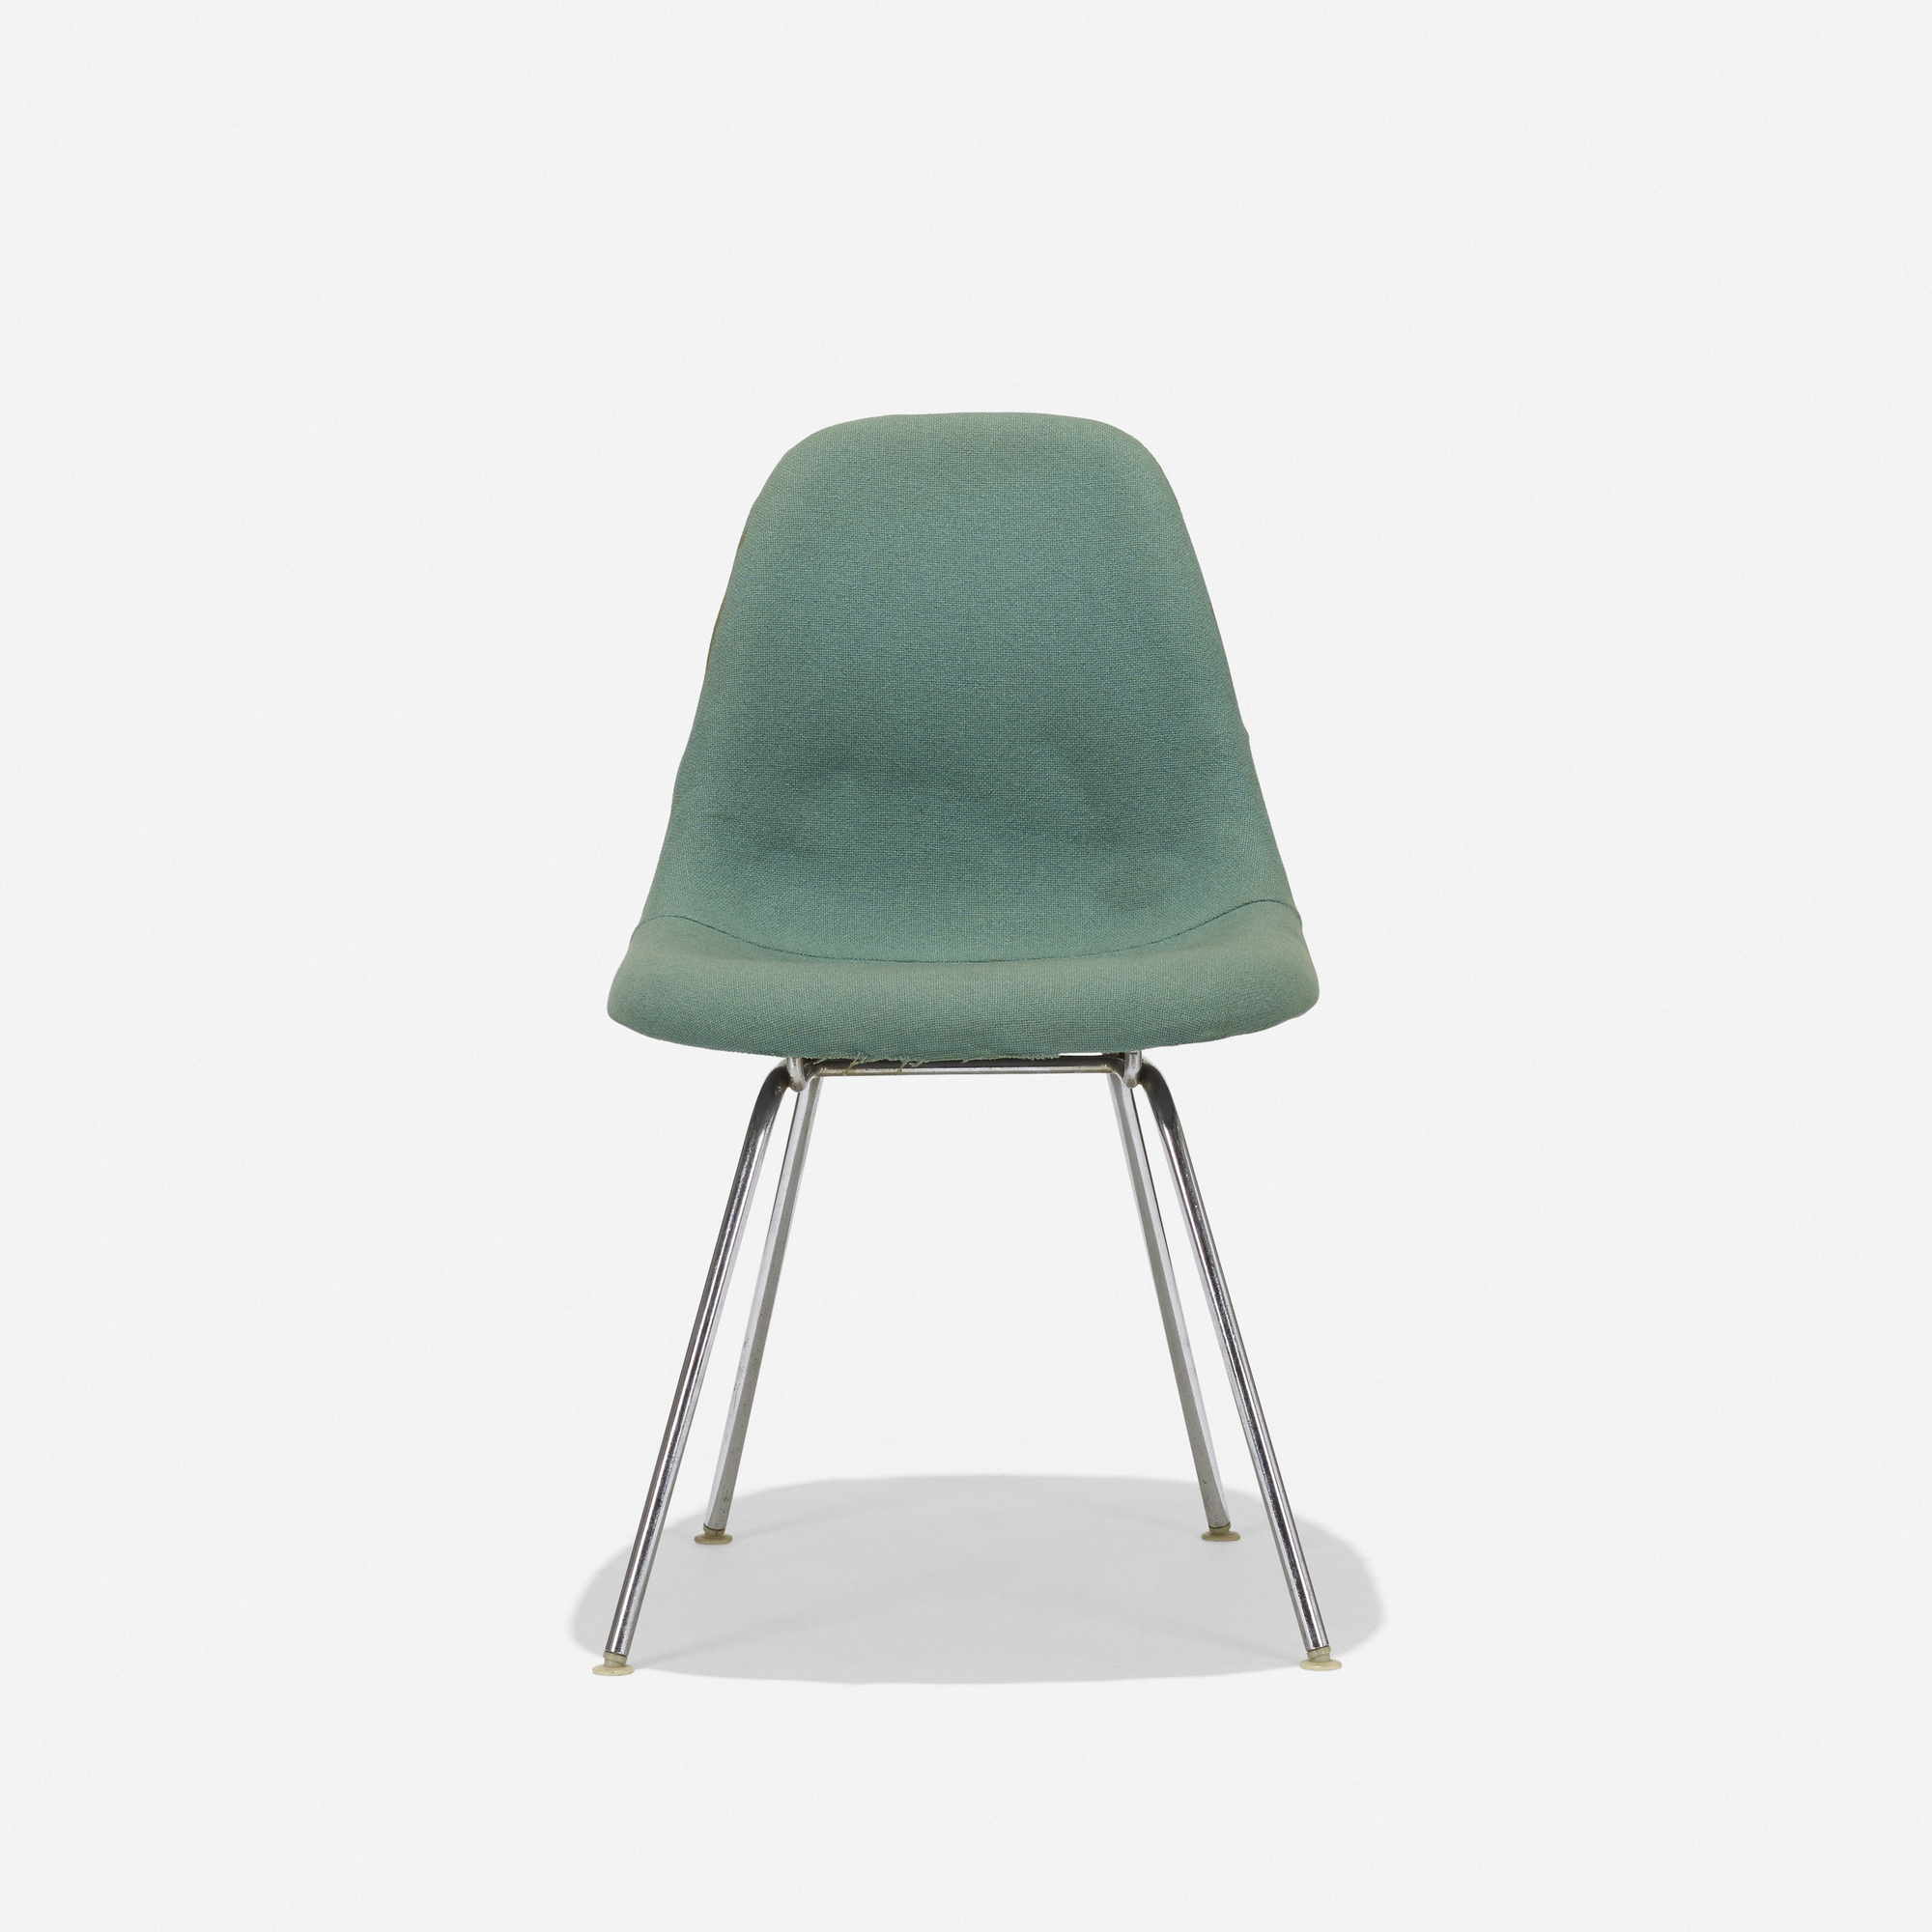 109: Charles and Ray Eames / DSX-1 (2 of 4)